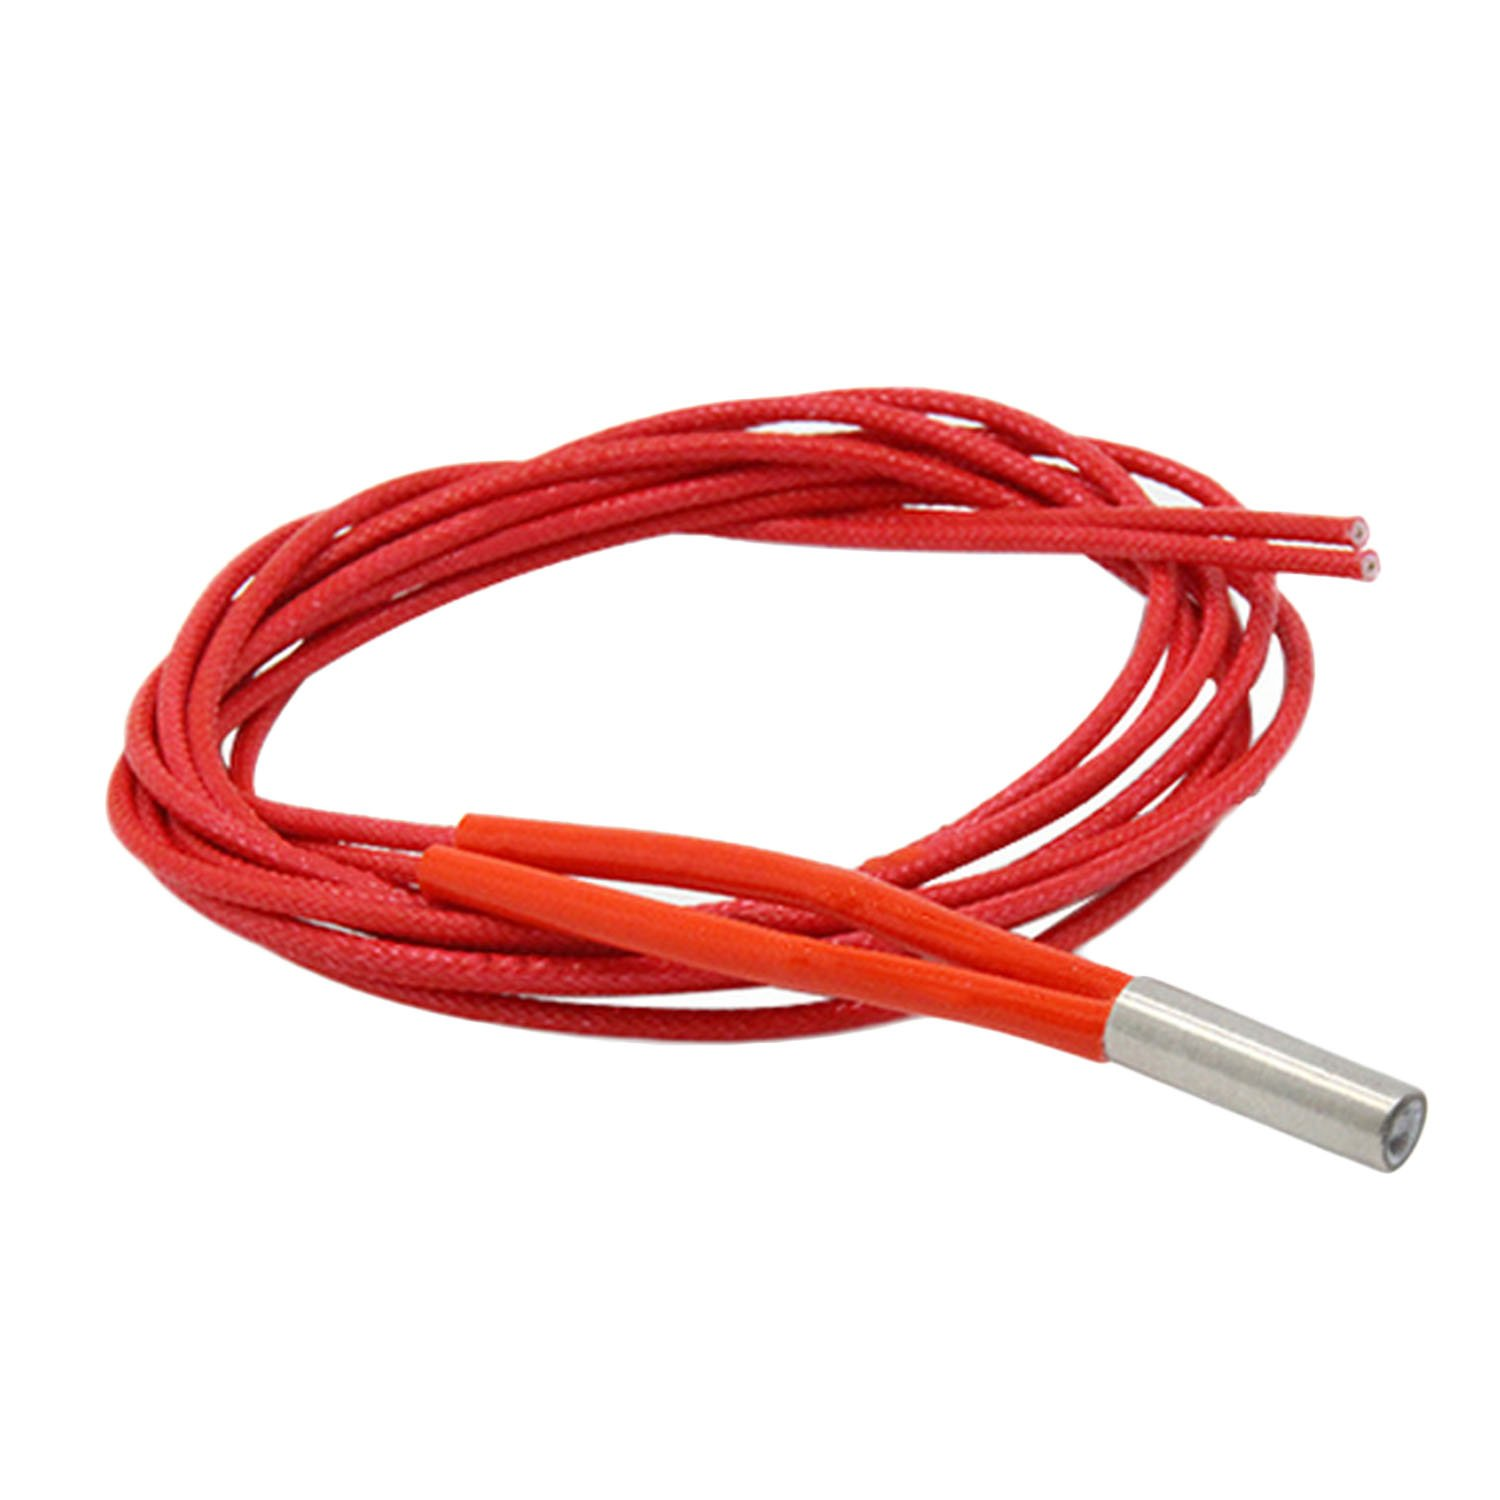 Heizpatrone SOPEAR 5 st/ücke 12 V 40 Watt Single Head Keramik Heizpatrone Draht NTC Thermistor f/ür 3D Drucker 6x20mm